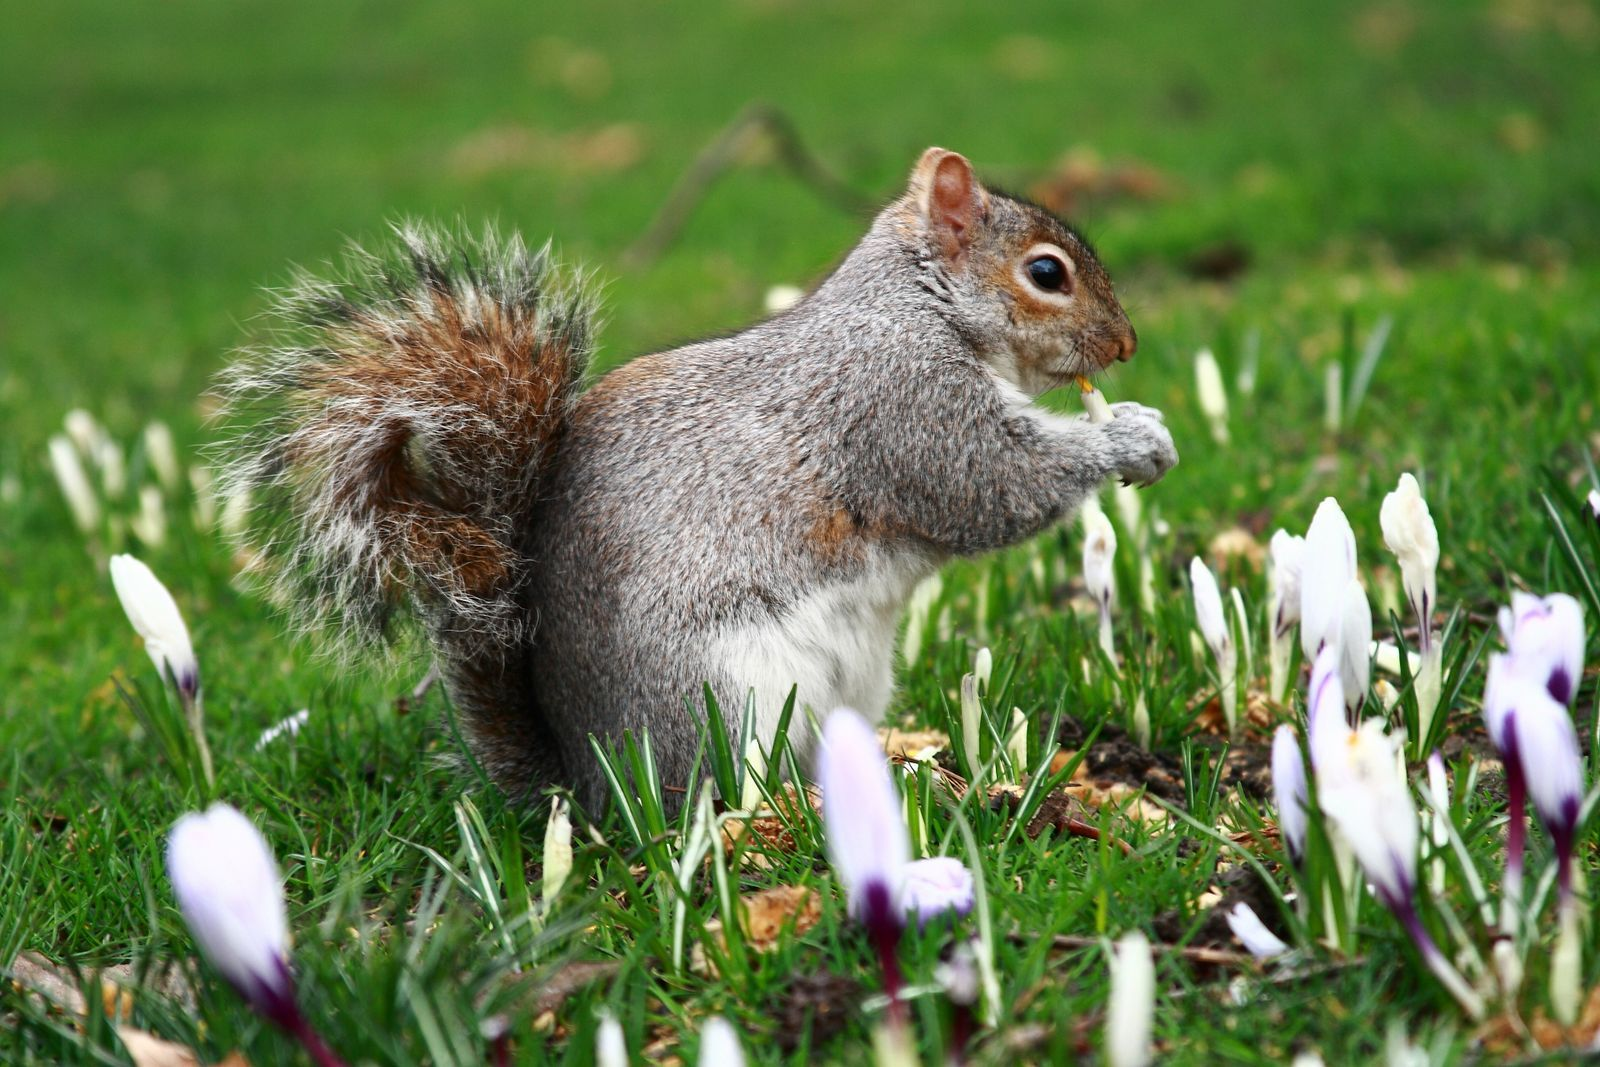 Home remedies keep those pesky rabbits and squirrels out